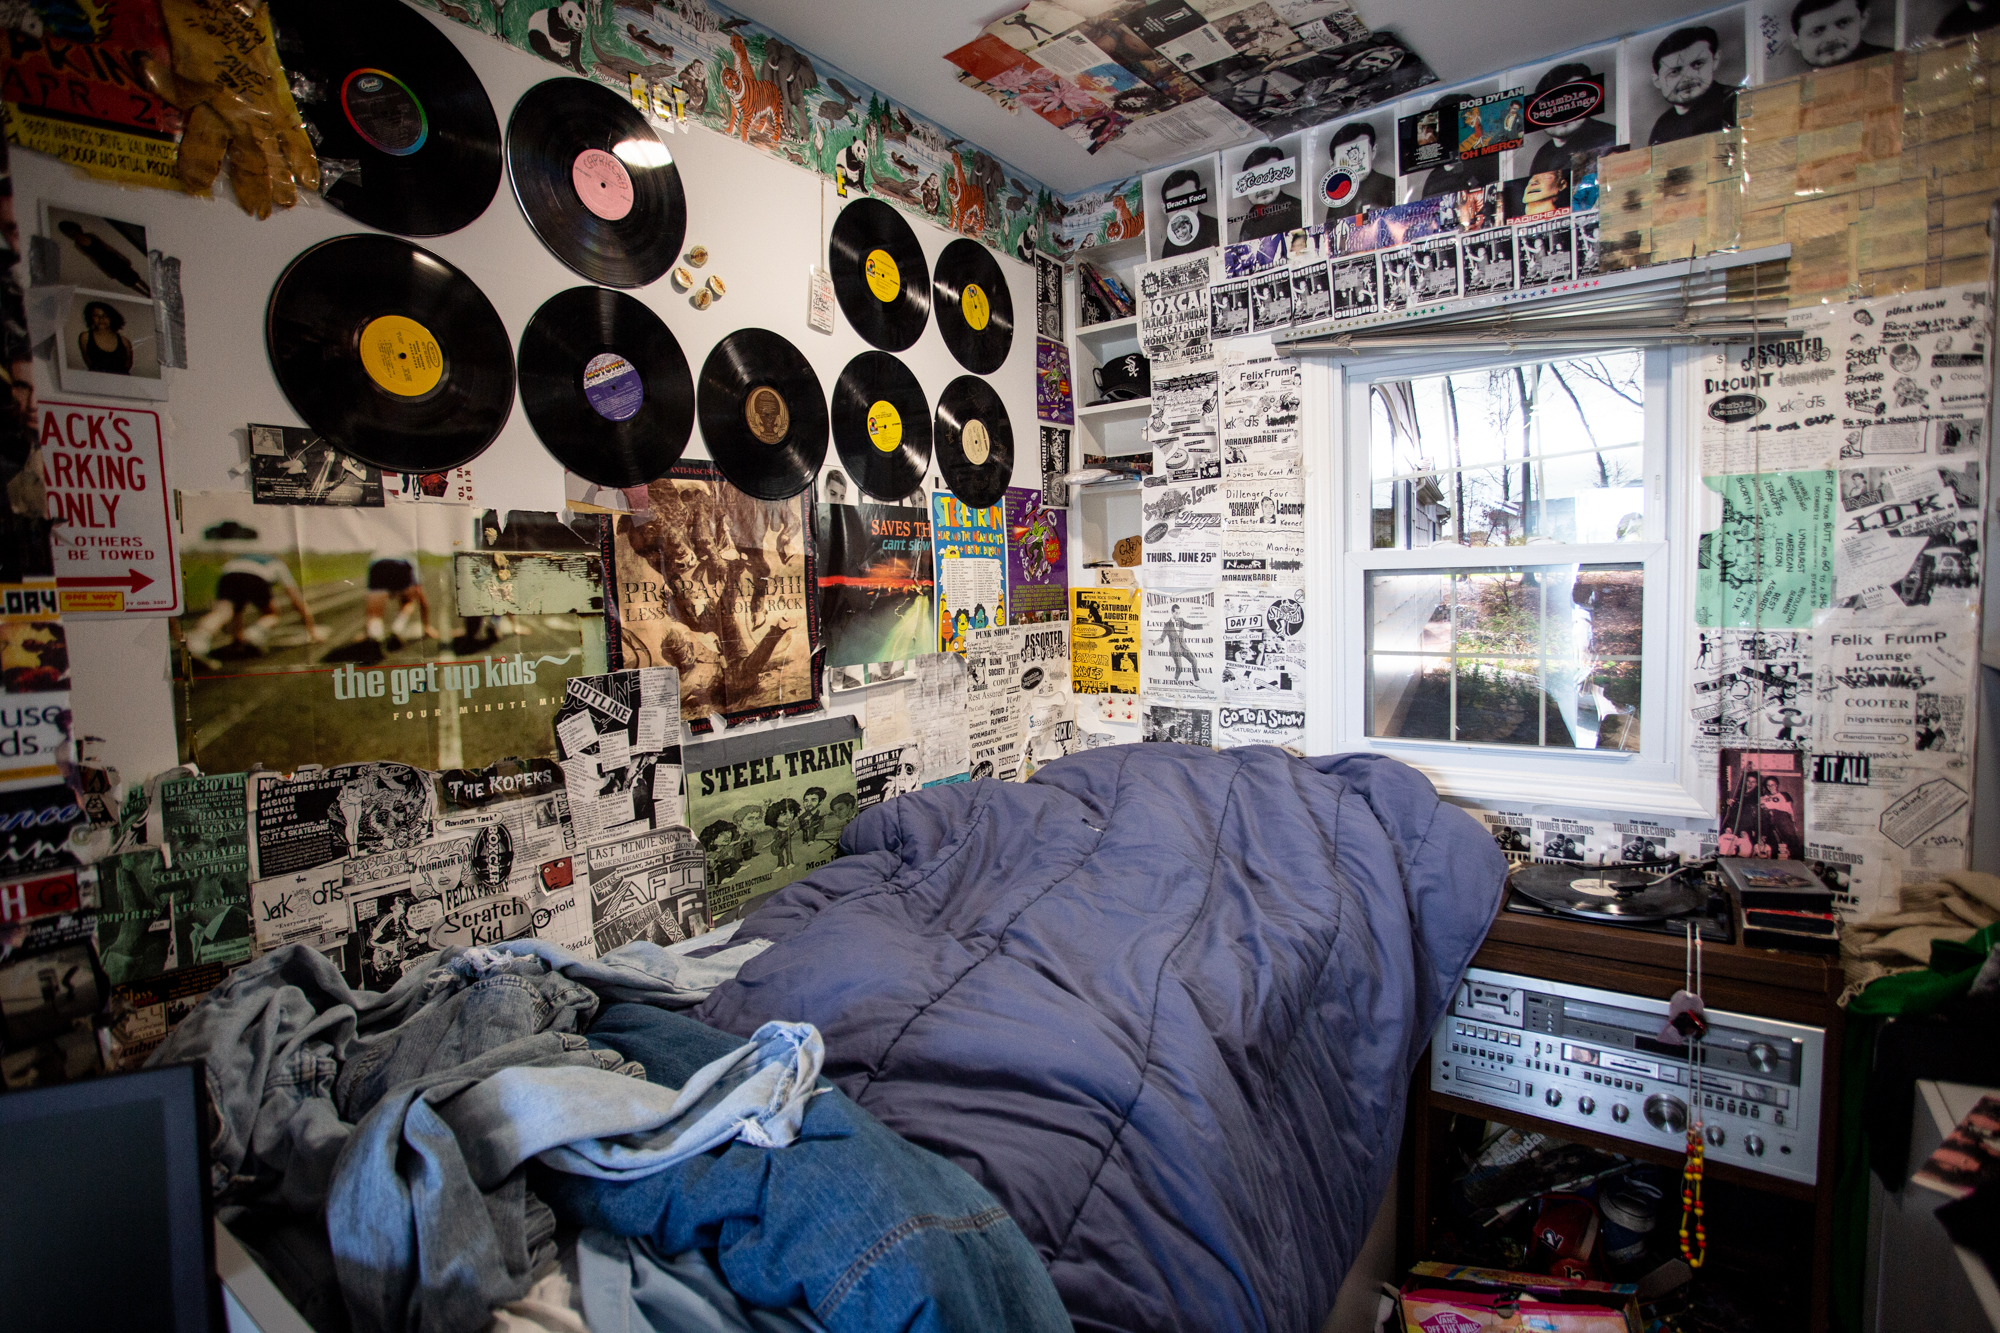 Jack Antonoff's recreation of his bedroom, on display at Shadow of the City festival in Asbury Park, NJ on August 25, 2018.